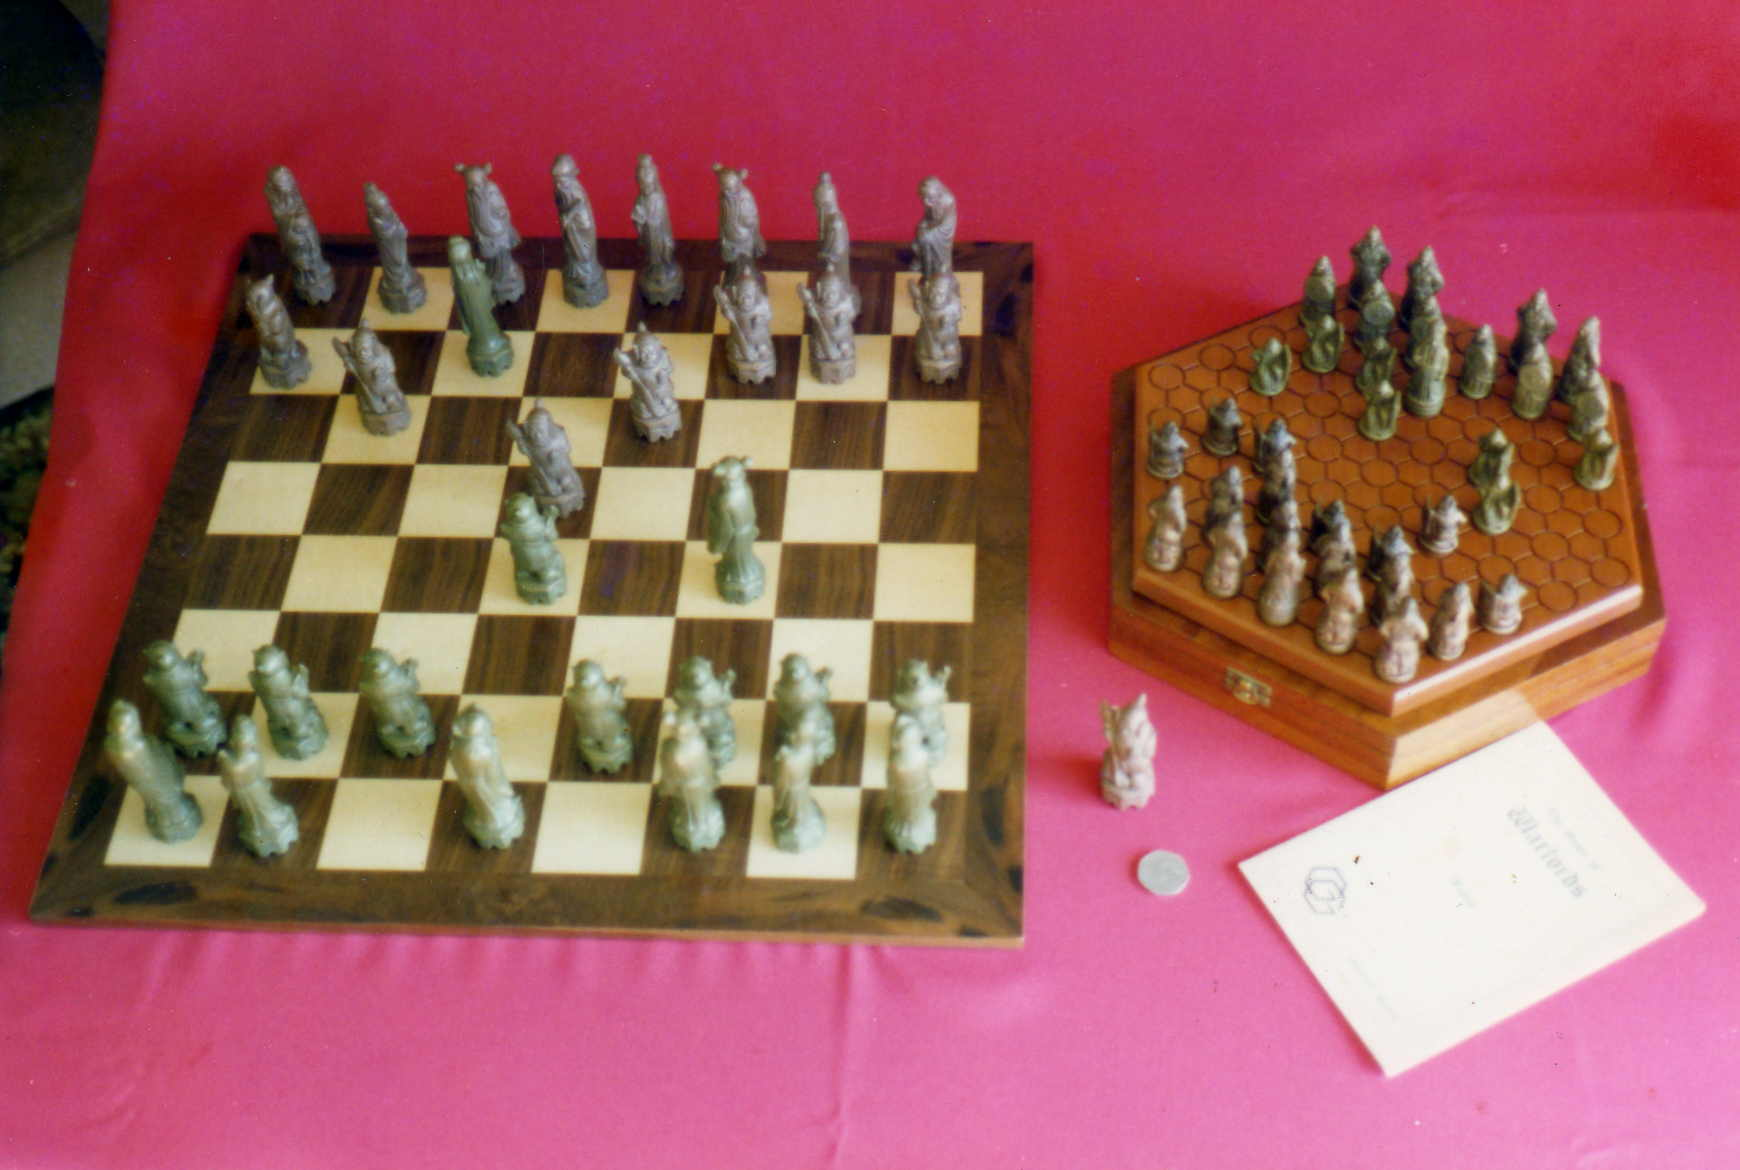 Warlords and Chess Set